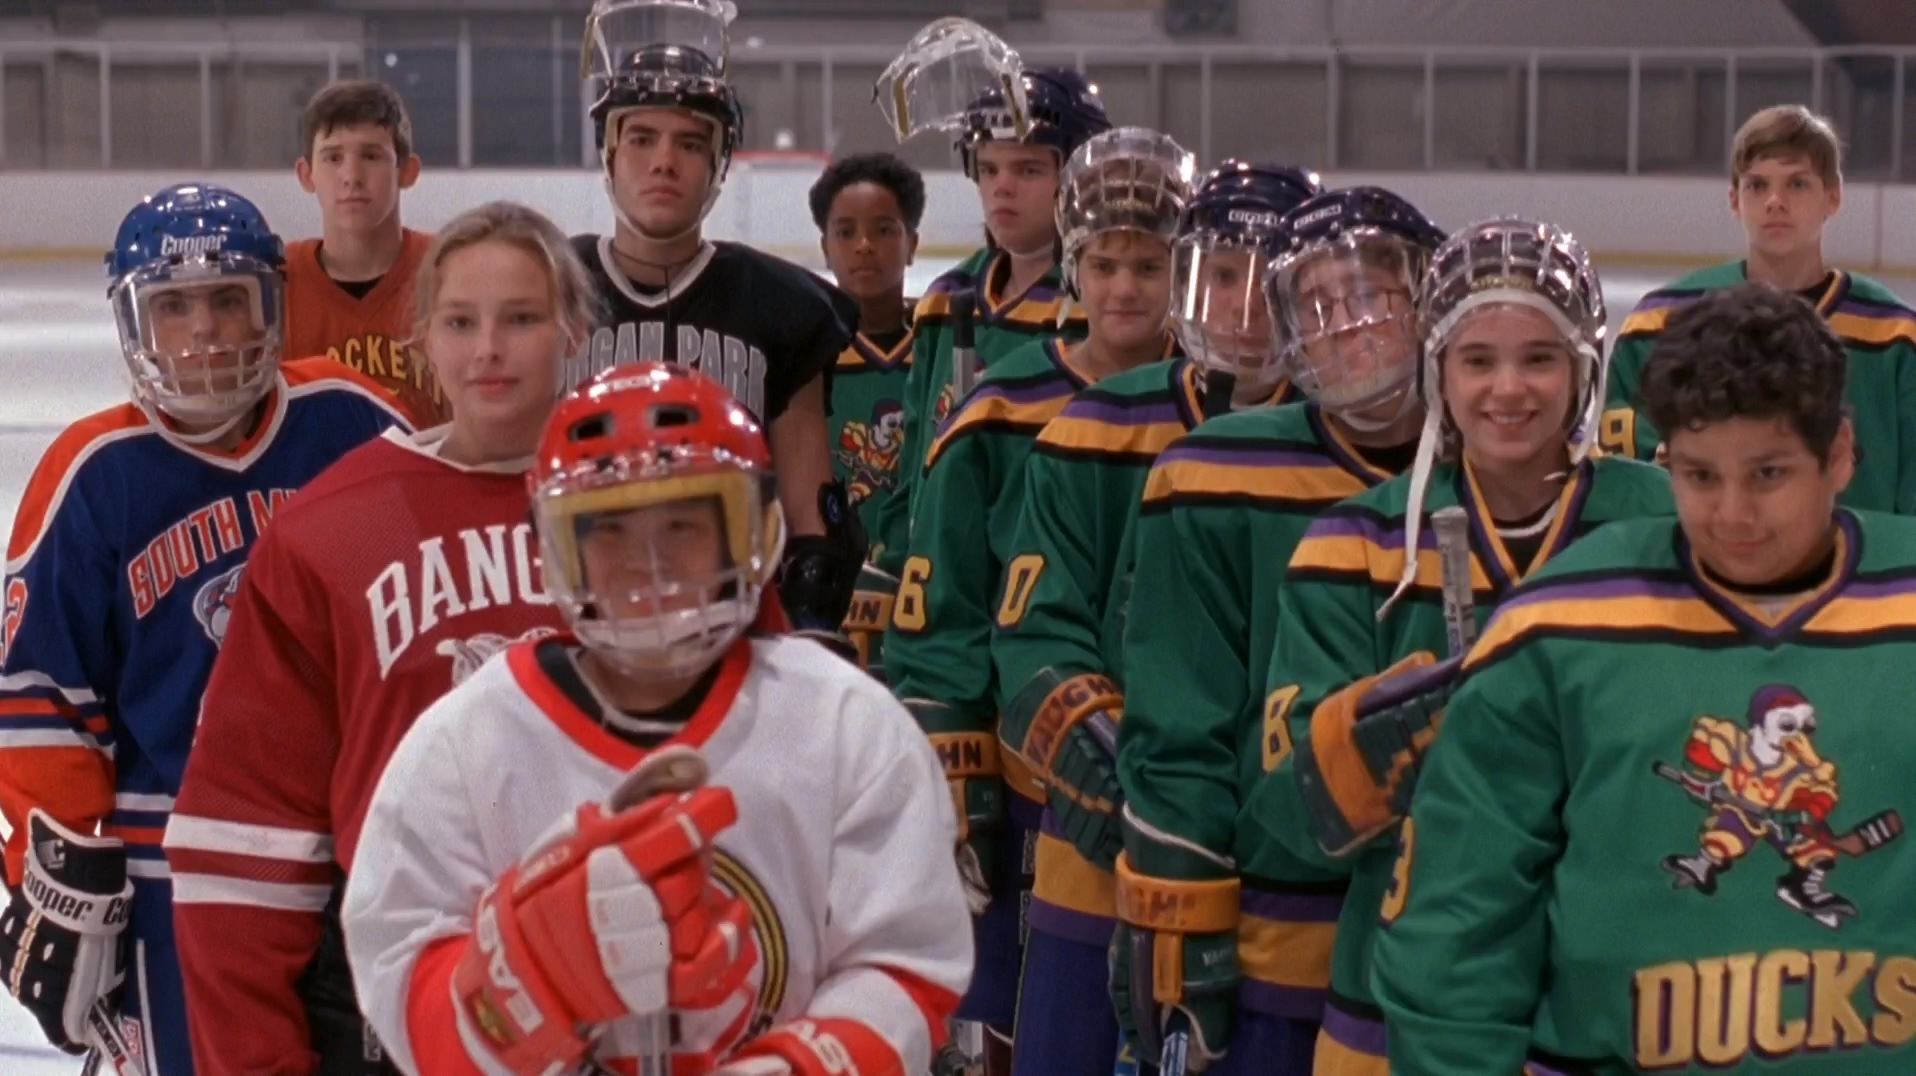 ���� ���� � 2 d2 the mighty ducks 1994 1080p